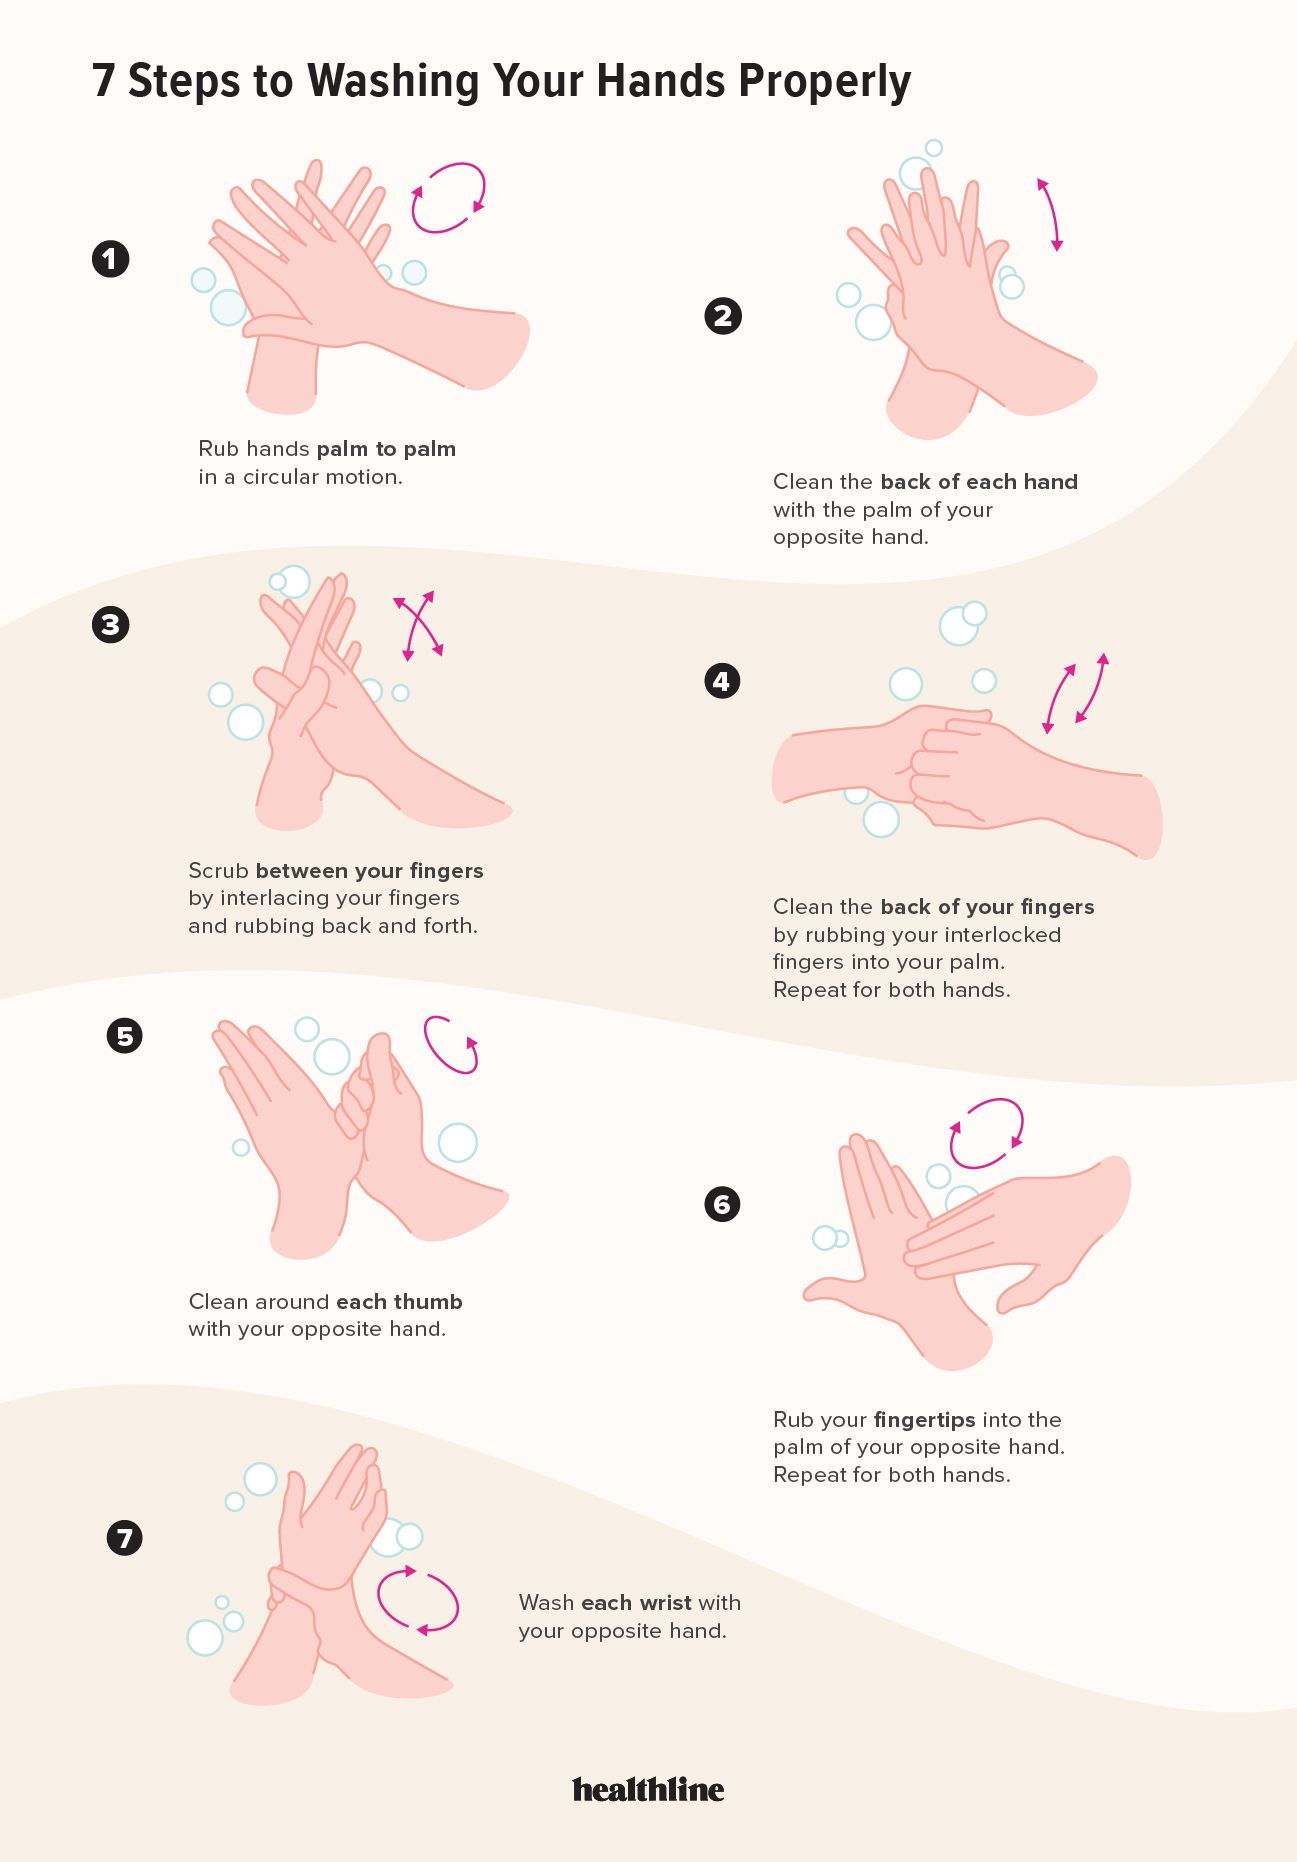 7 Steps Of Handwashing How To Wash Your Hands Properly In